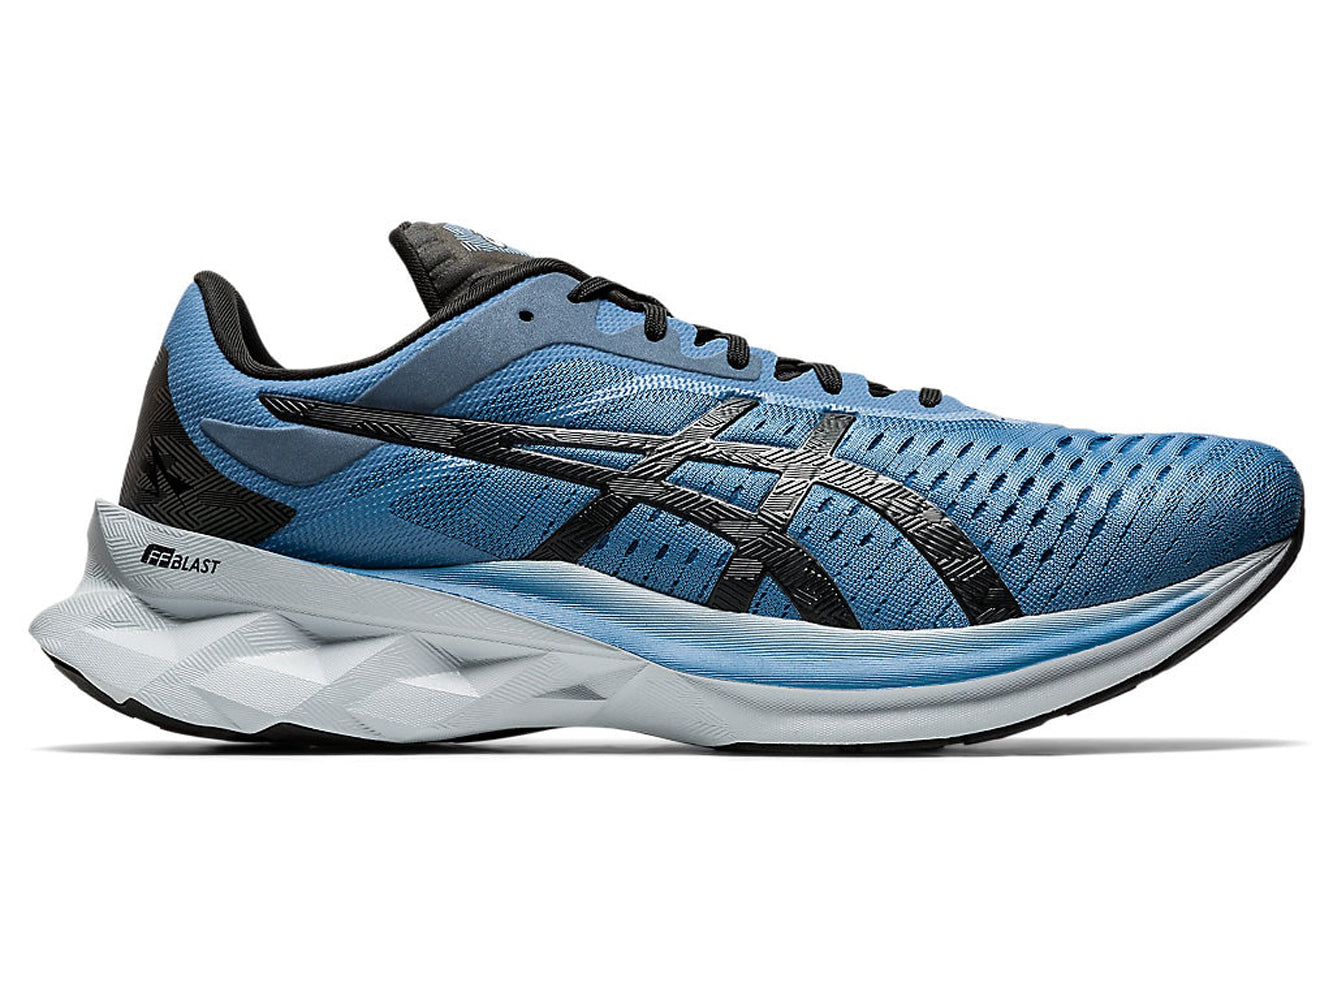 Men's Asics Novablast Running Shoe in Grey Floss/Black from the side